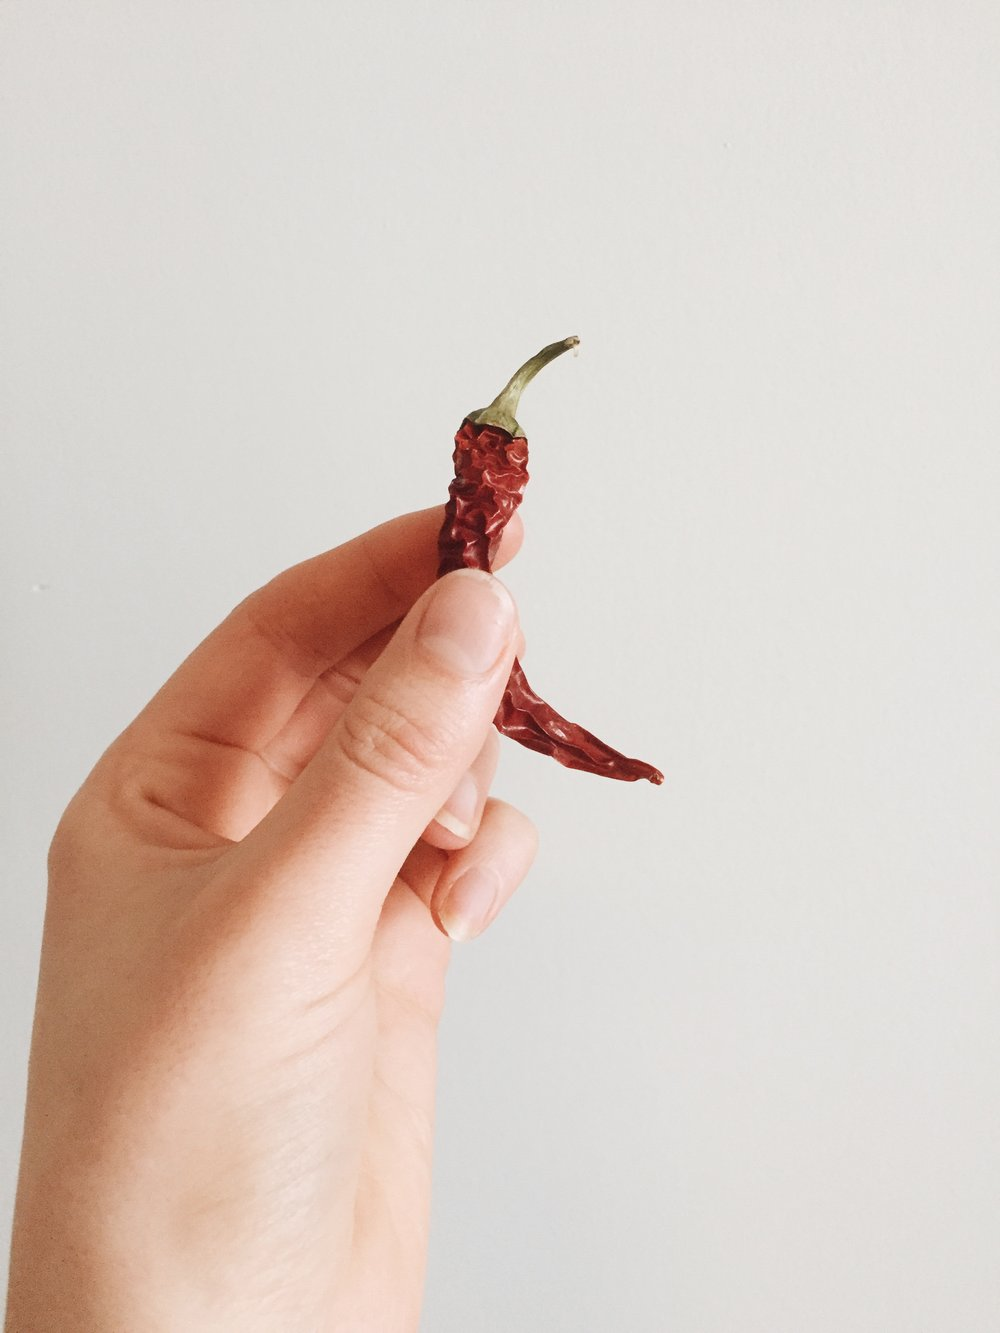 dried-chilli.jpg